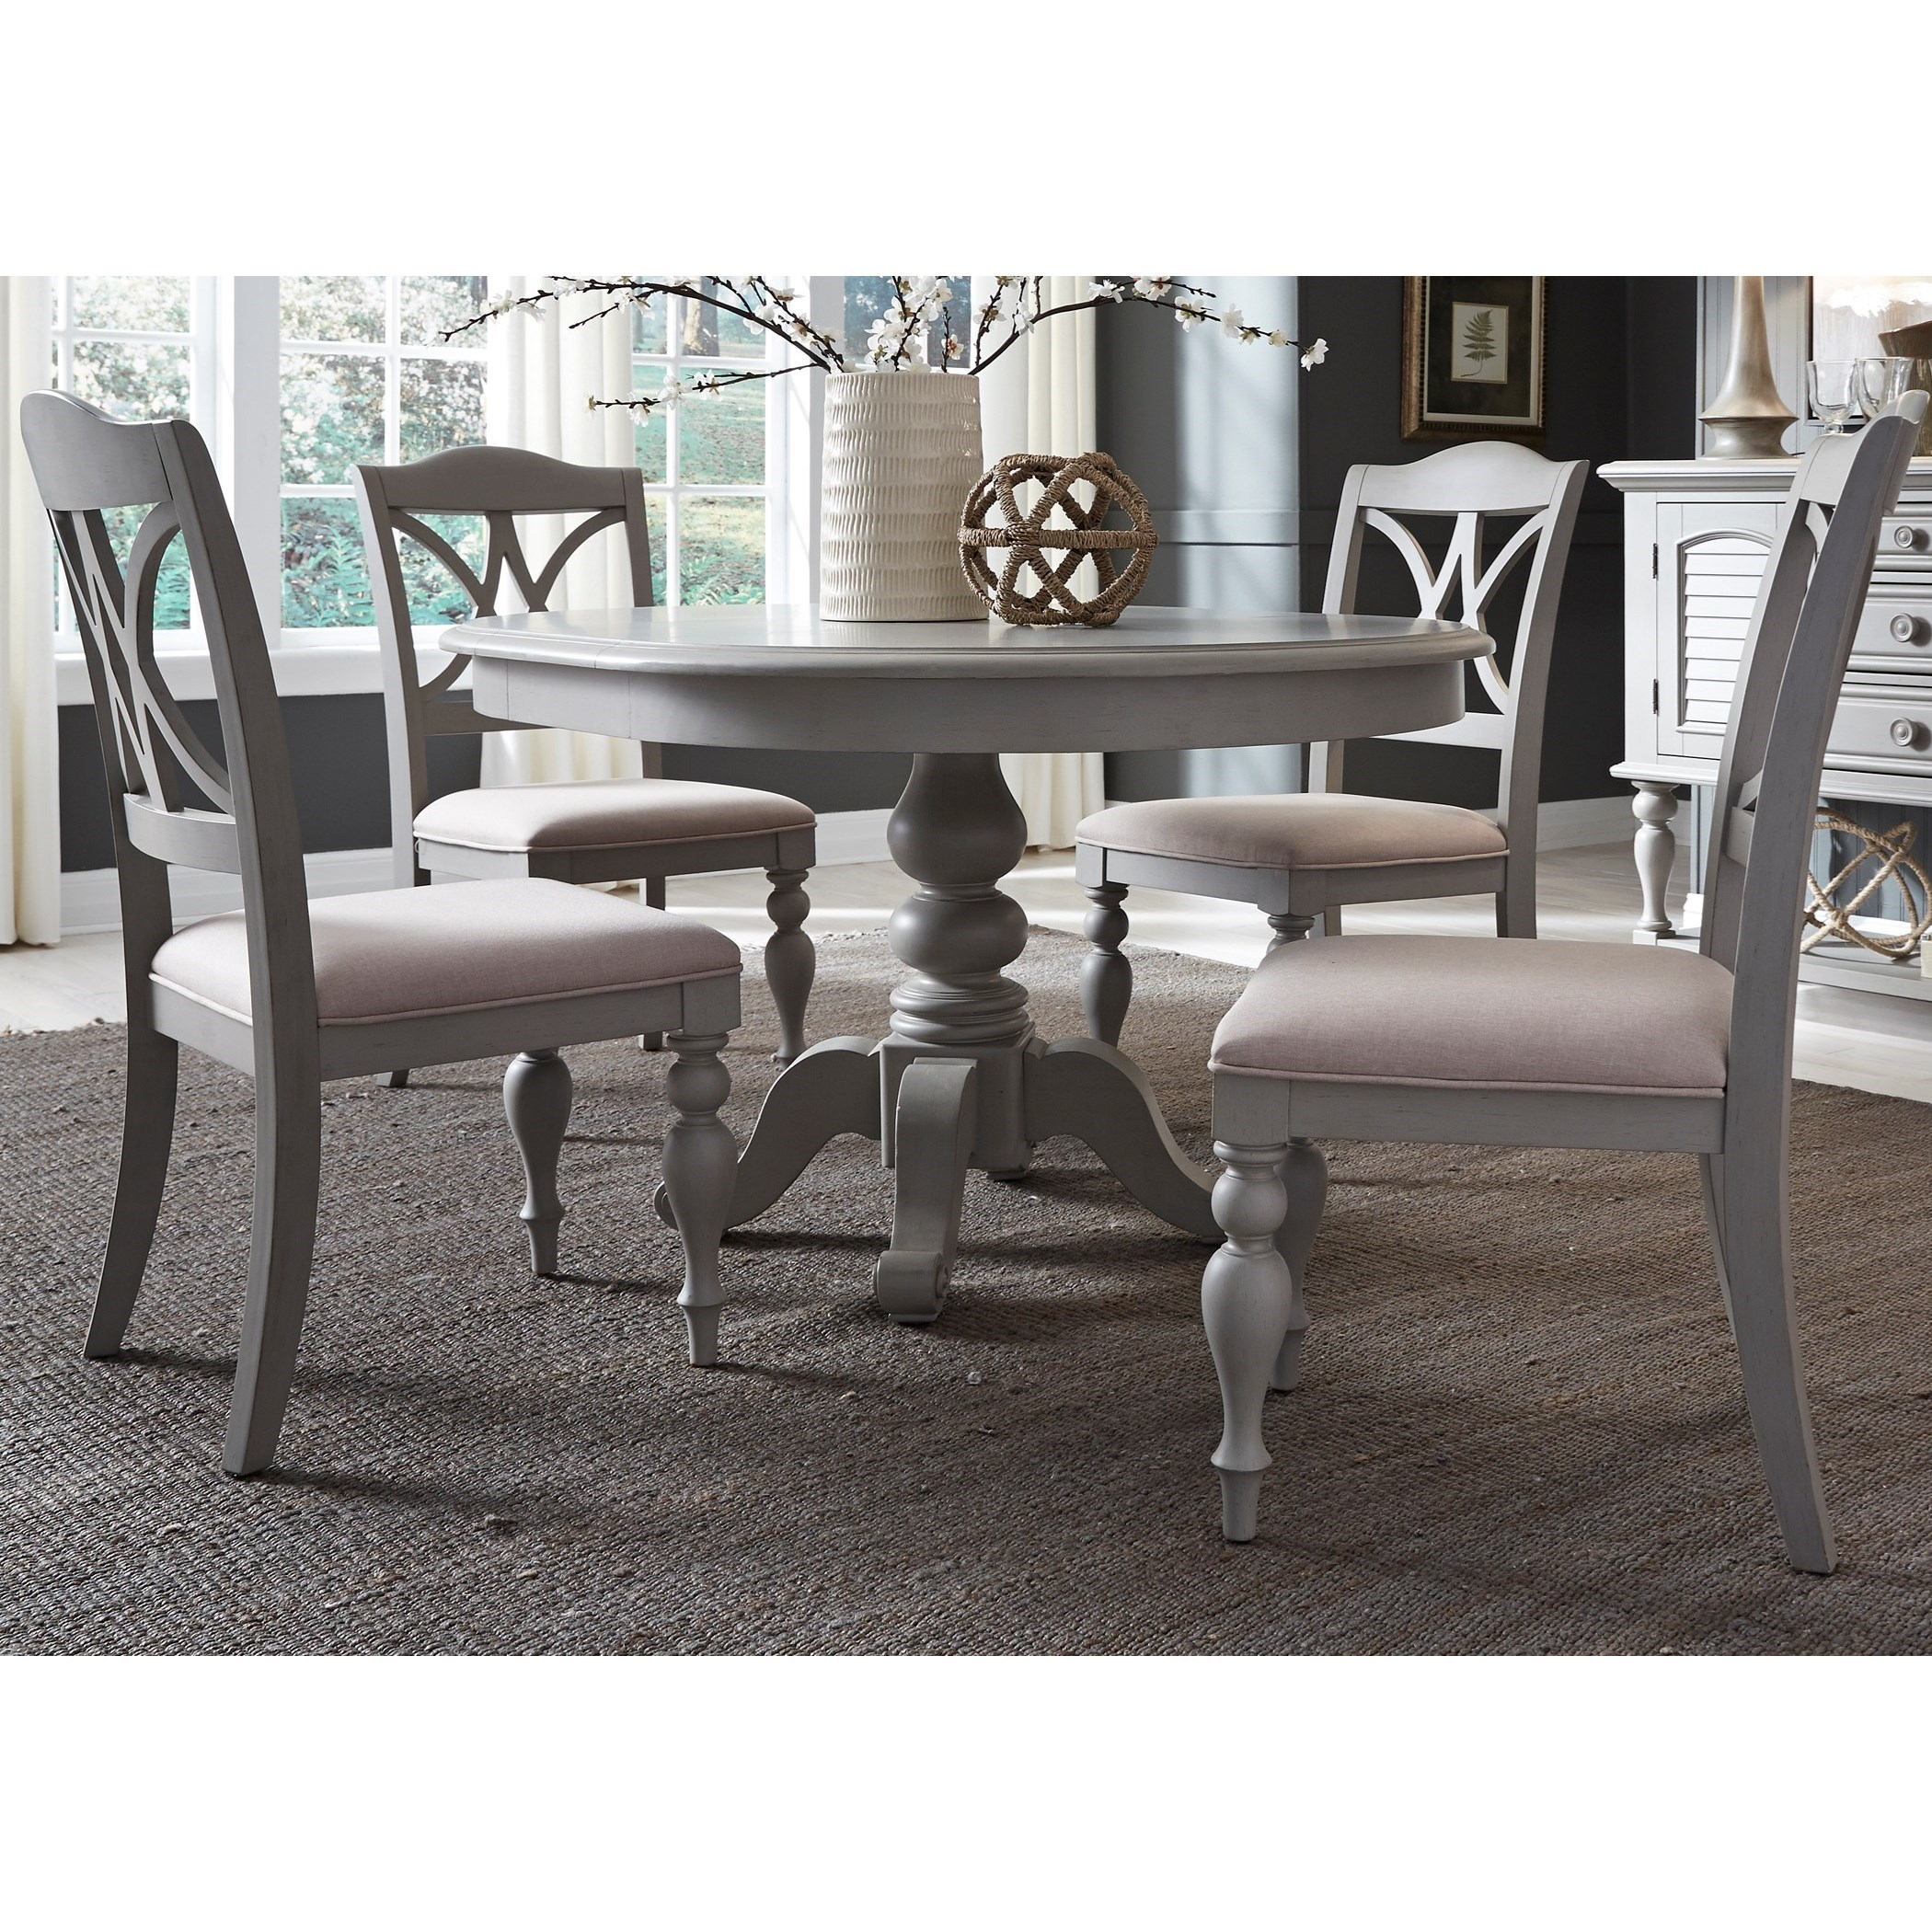 Summer House Dining 5 Piece Pedestal Table Set  by Libby at Walker's Furniture